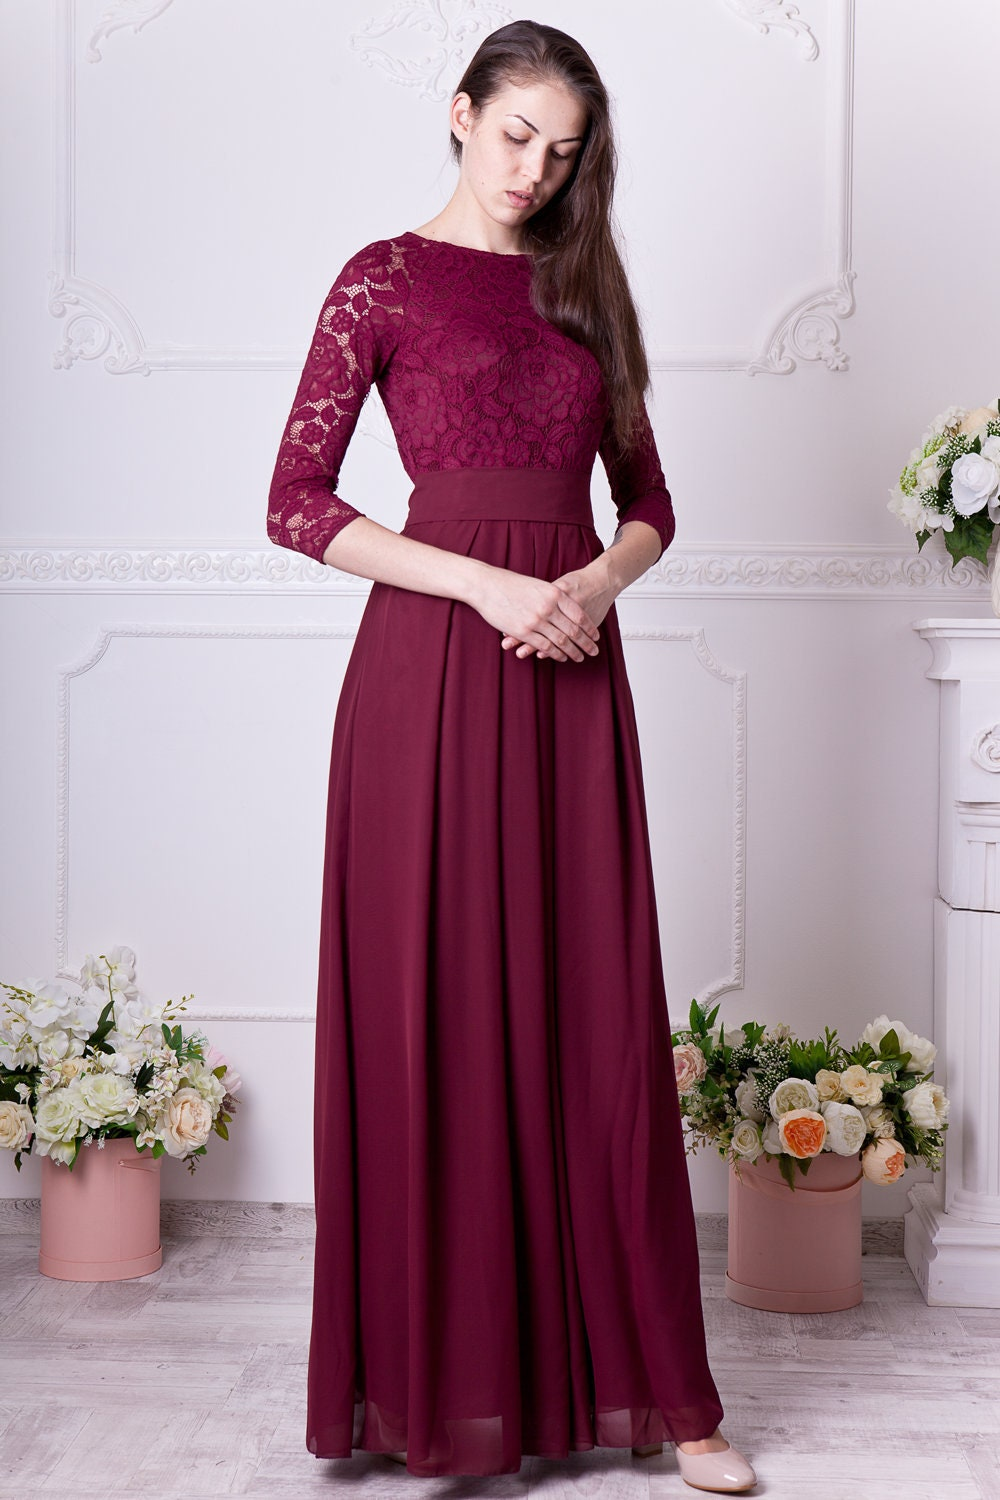 Burgundy bridesmaid dress long. Floral lace formal gown with | Etsy